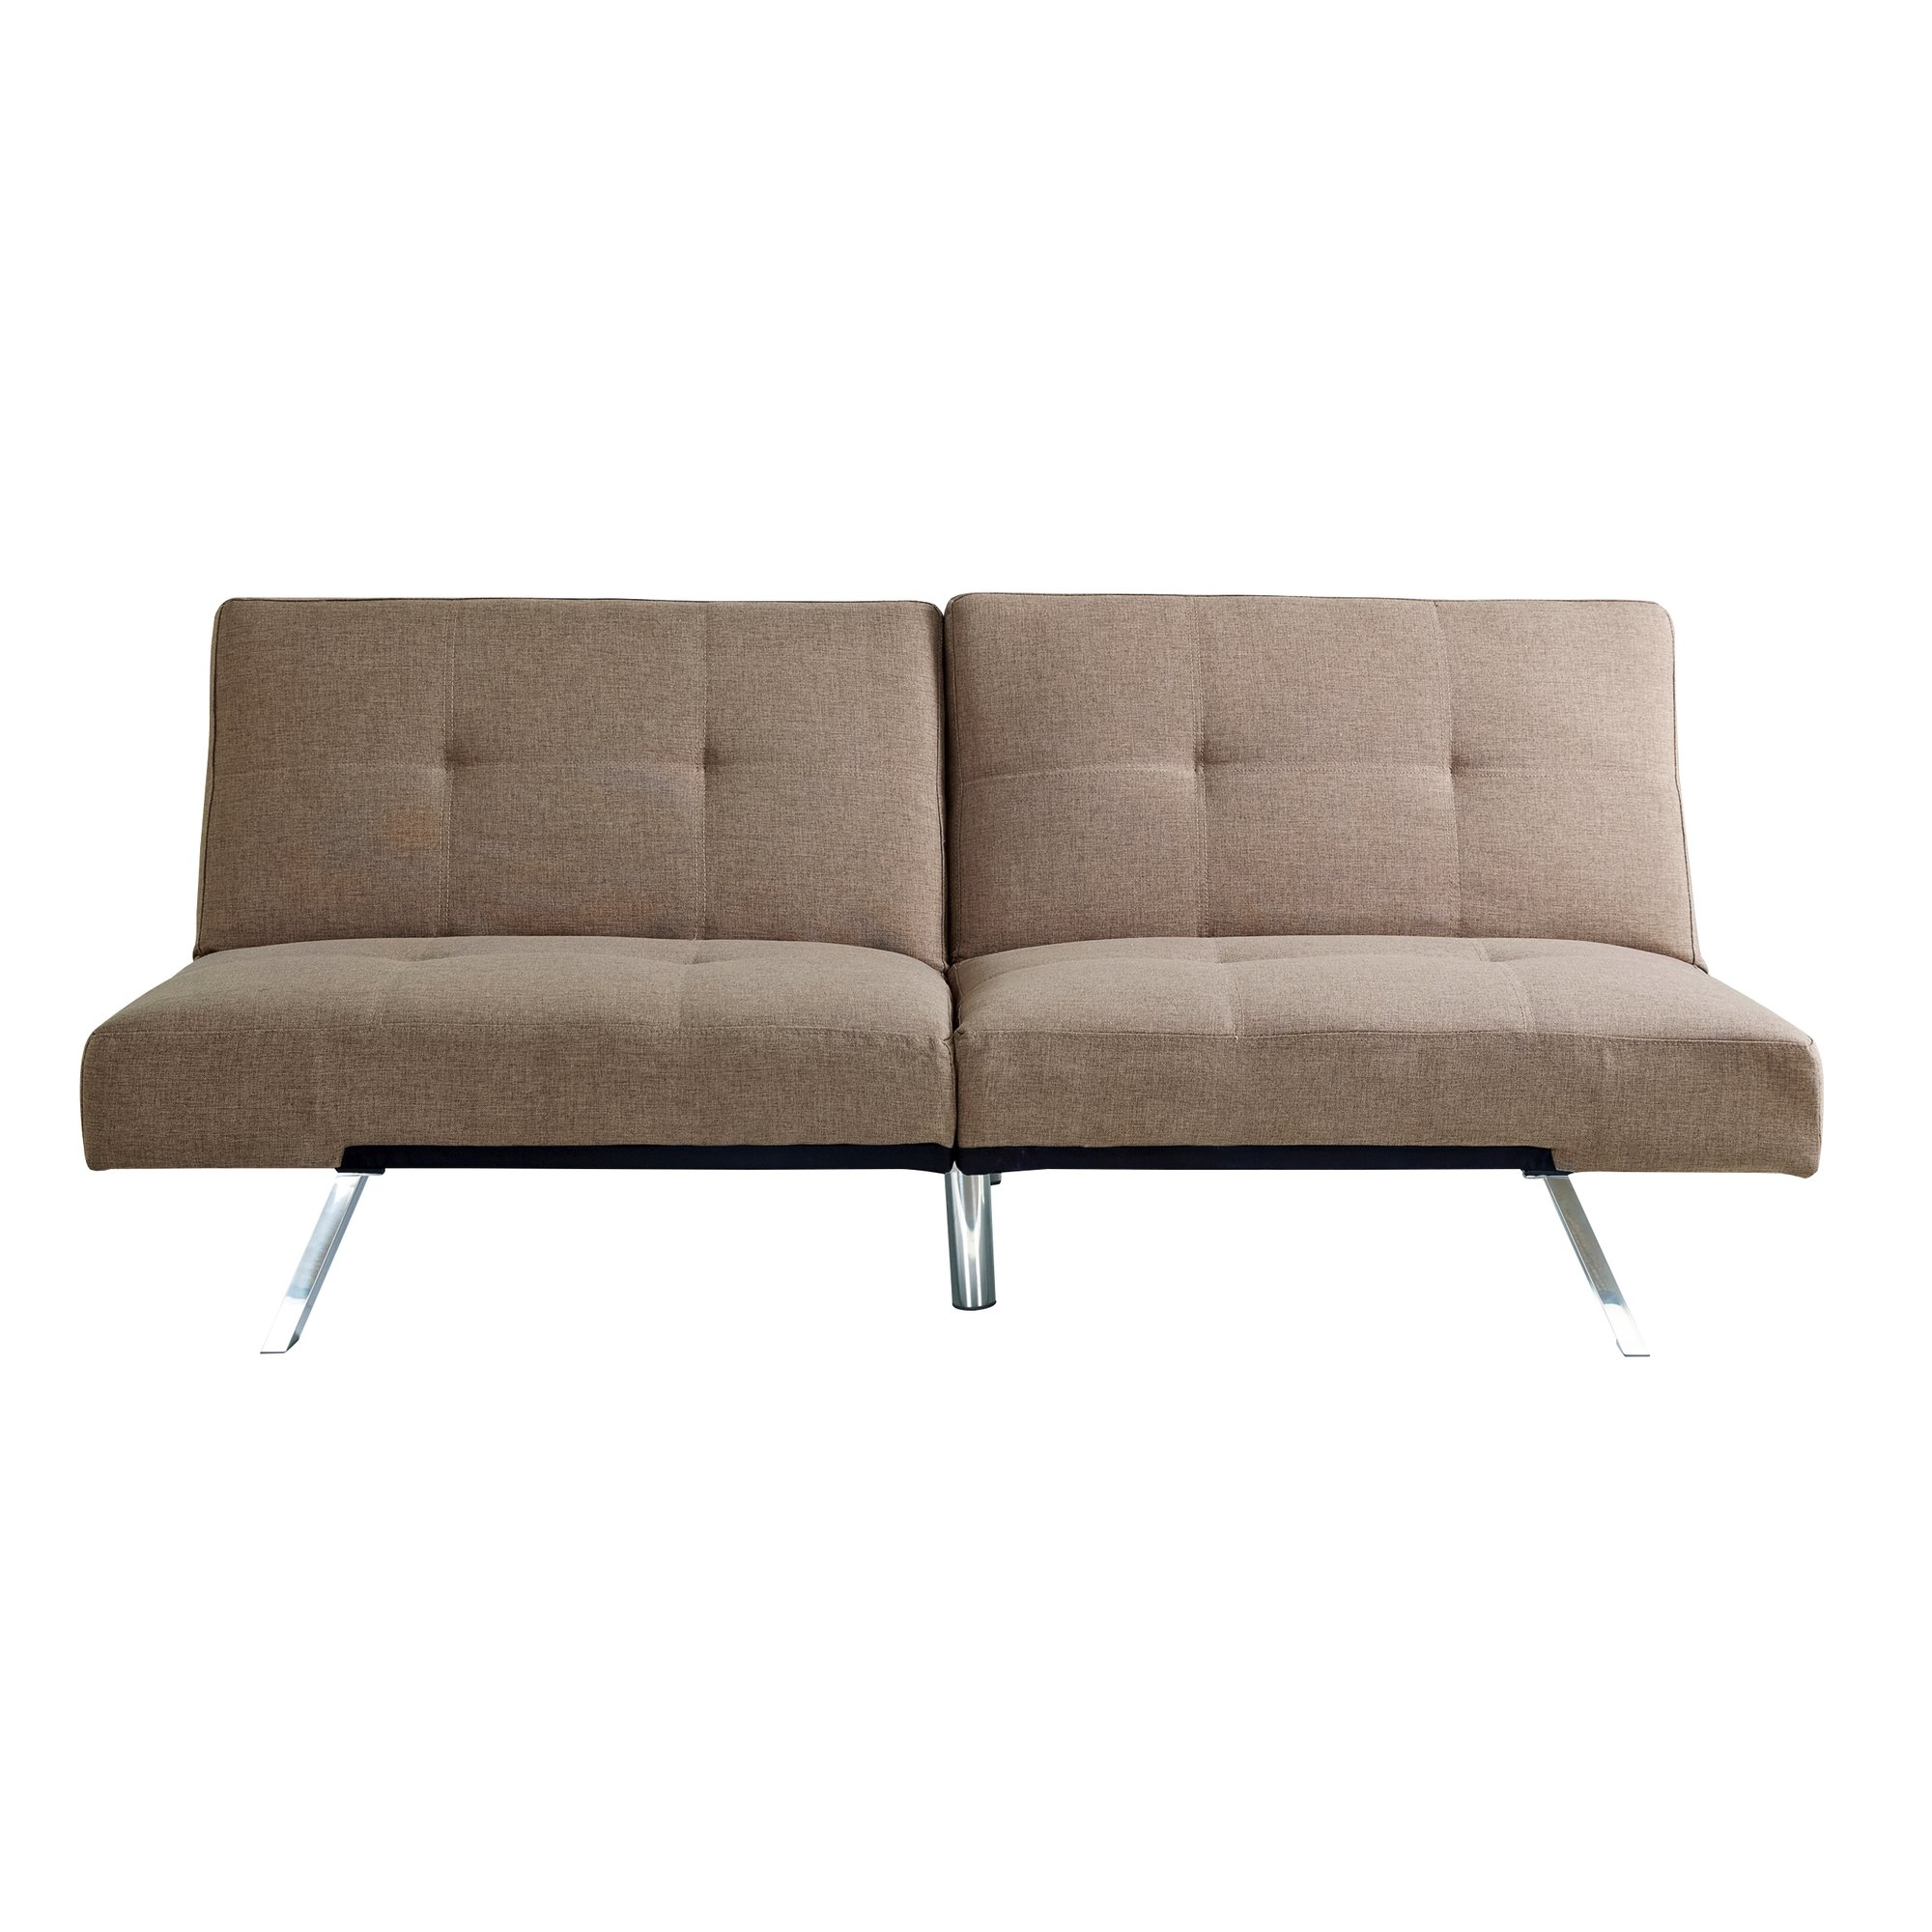 Barton 70 Sleeper Sofa Reviews Joss Main With 70 Sleeper Sofa (Image 8 of 15)